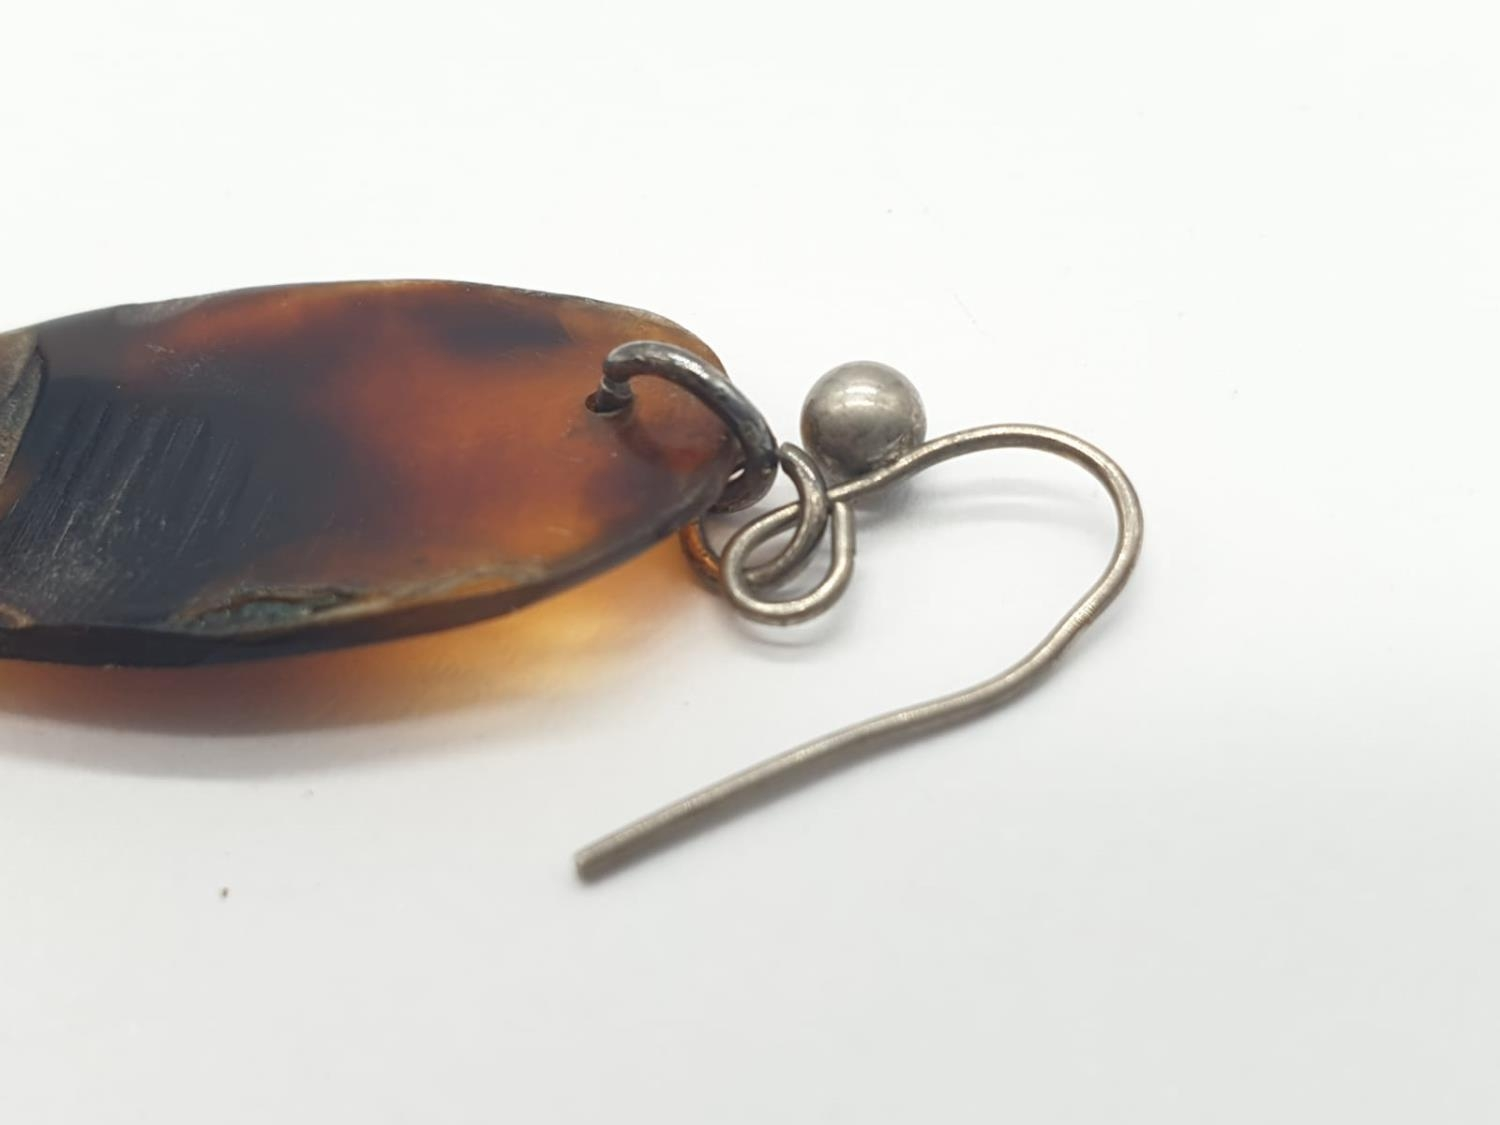 Tortoiseshell and silver earrings. 4.2g in weight. 8cm drop. - Image 4 of 4